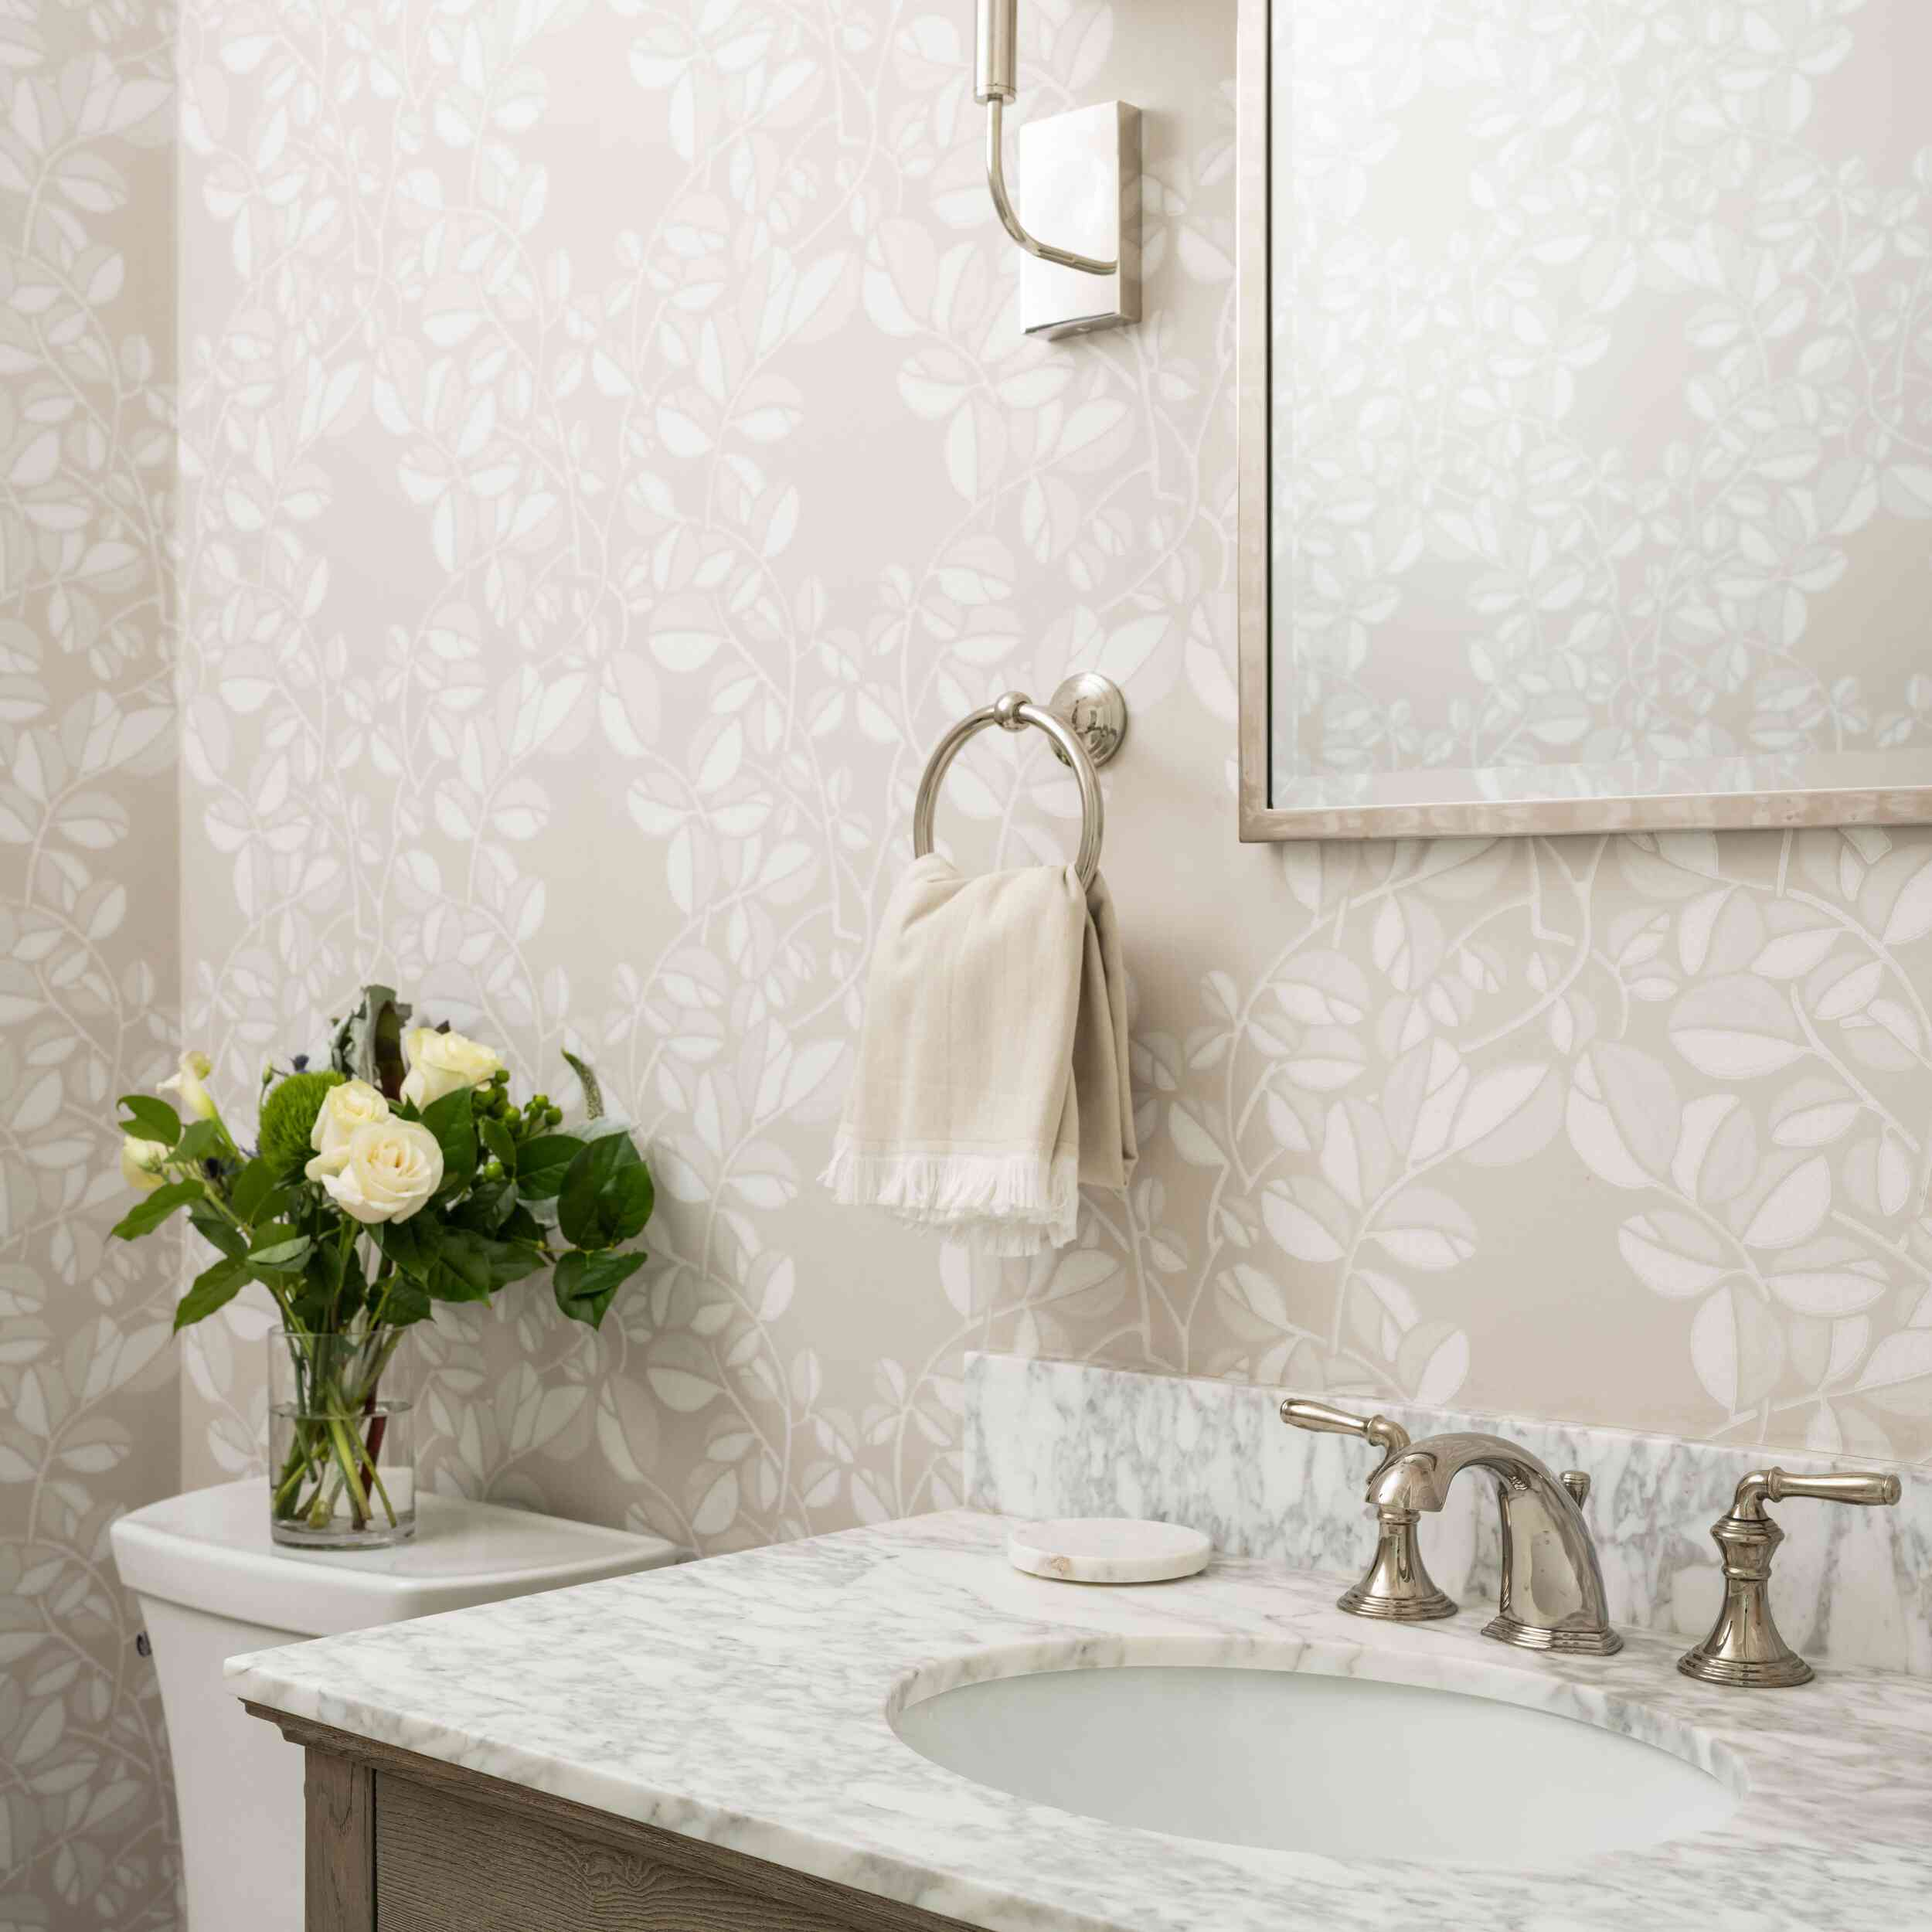 Wallpapered bathroom with marble sink, flower bouquet behind toilet